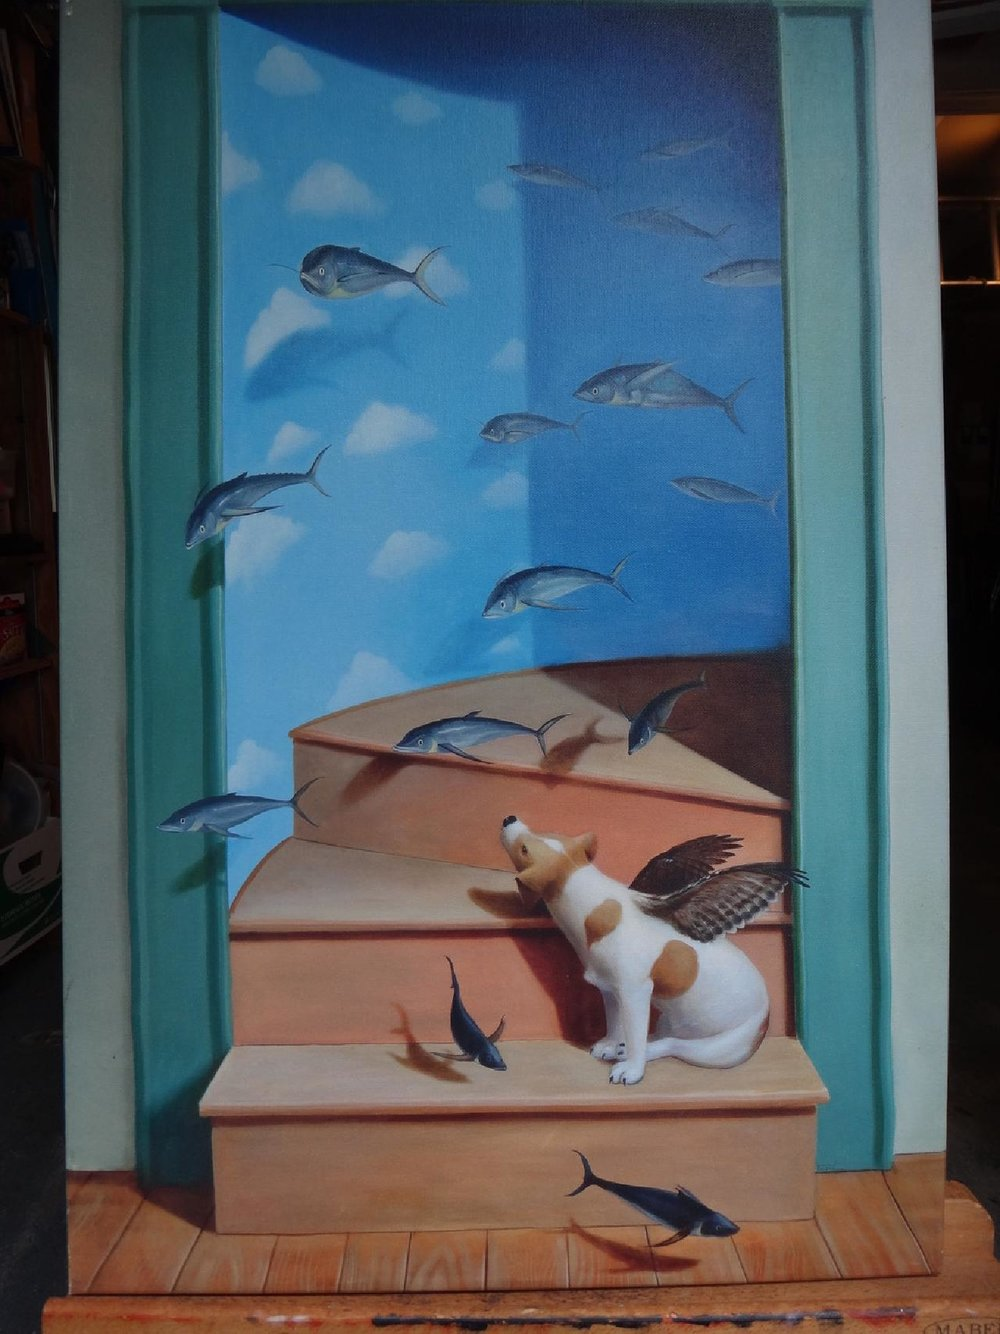 "Title:Something Fishy  Artist: Leslie Folksman  Medium: Archival Paper  Dimensions: 24"""" x 18""  Framed: No  Production Info: Signed & Numbered  Price: Contact for Inquiry"